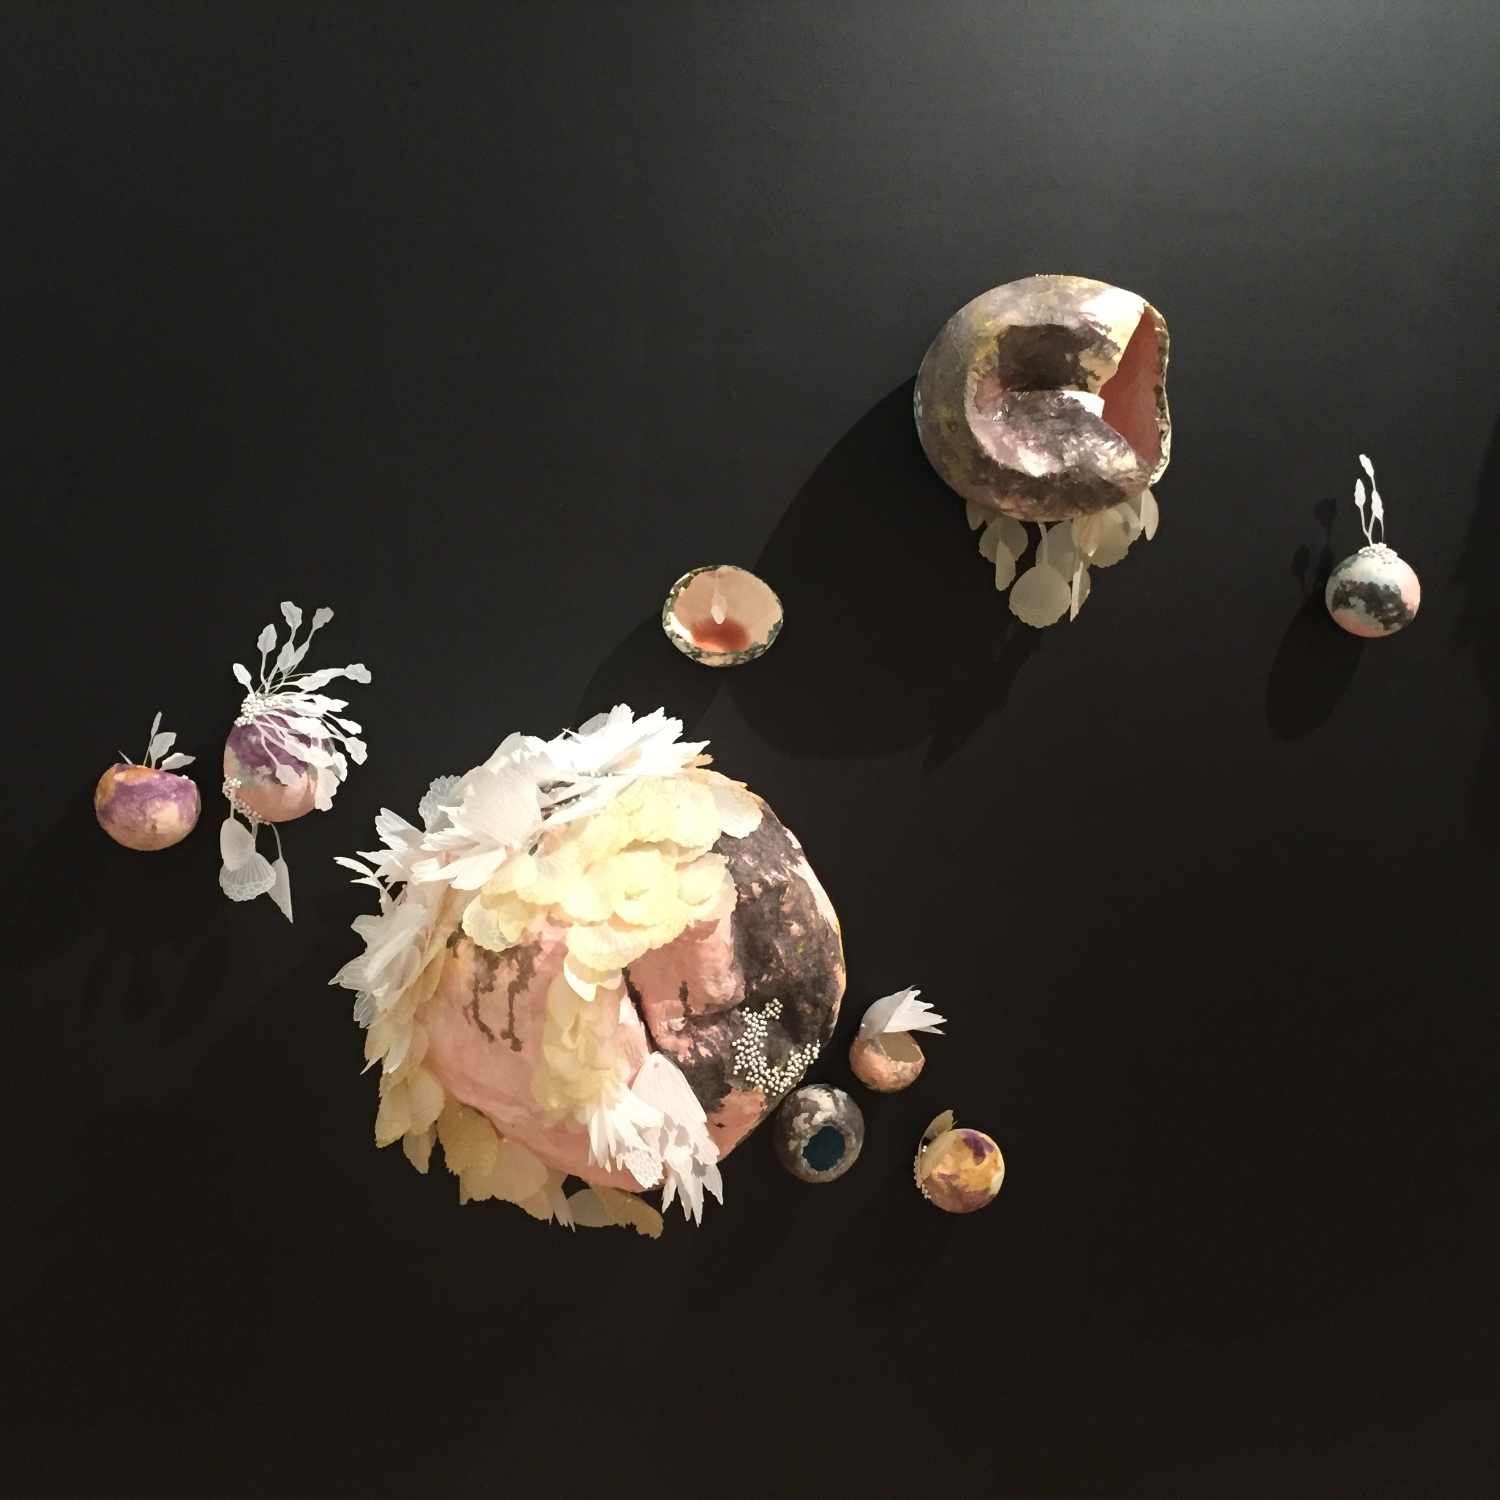 Solastalgic Dream (installation view) by Terri Fidelak, 2015, mixed media, dimensions variable